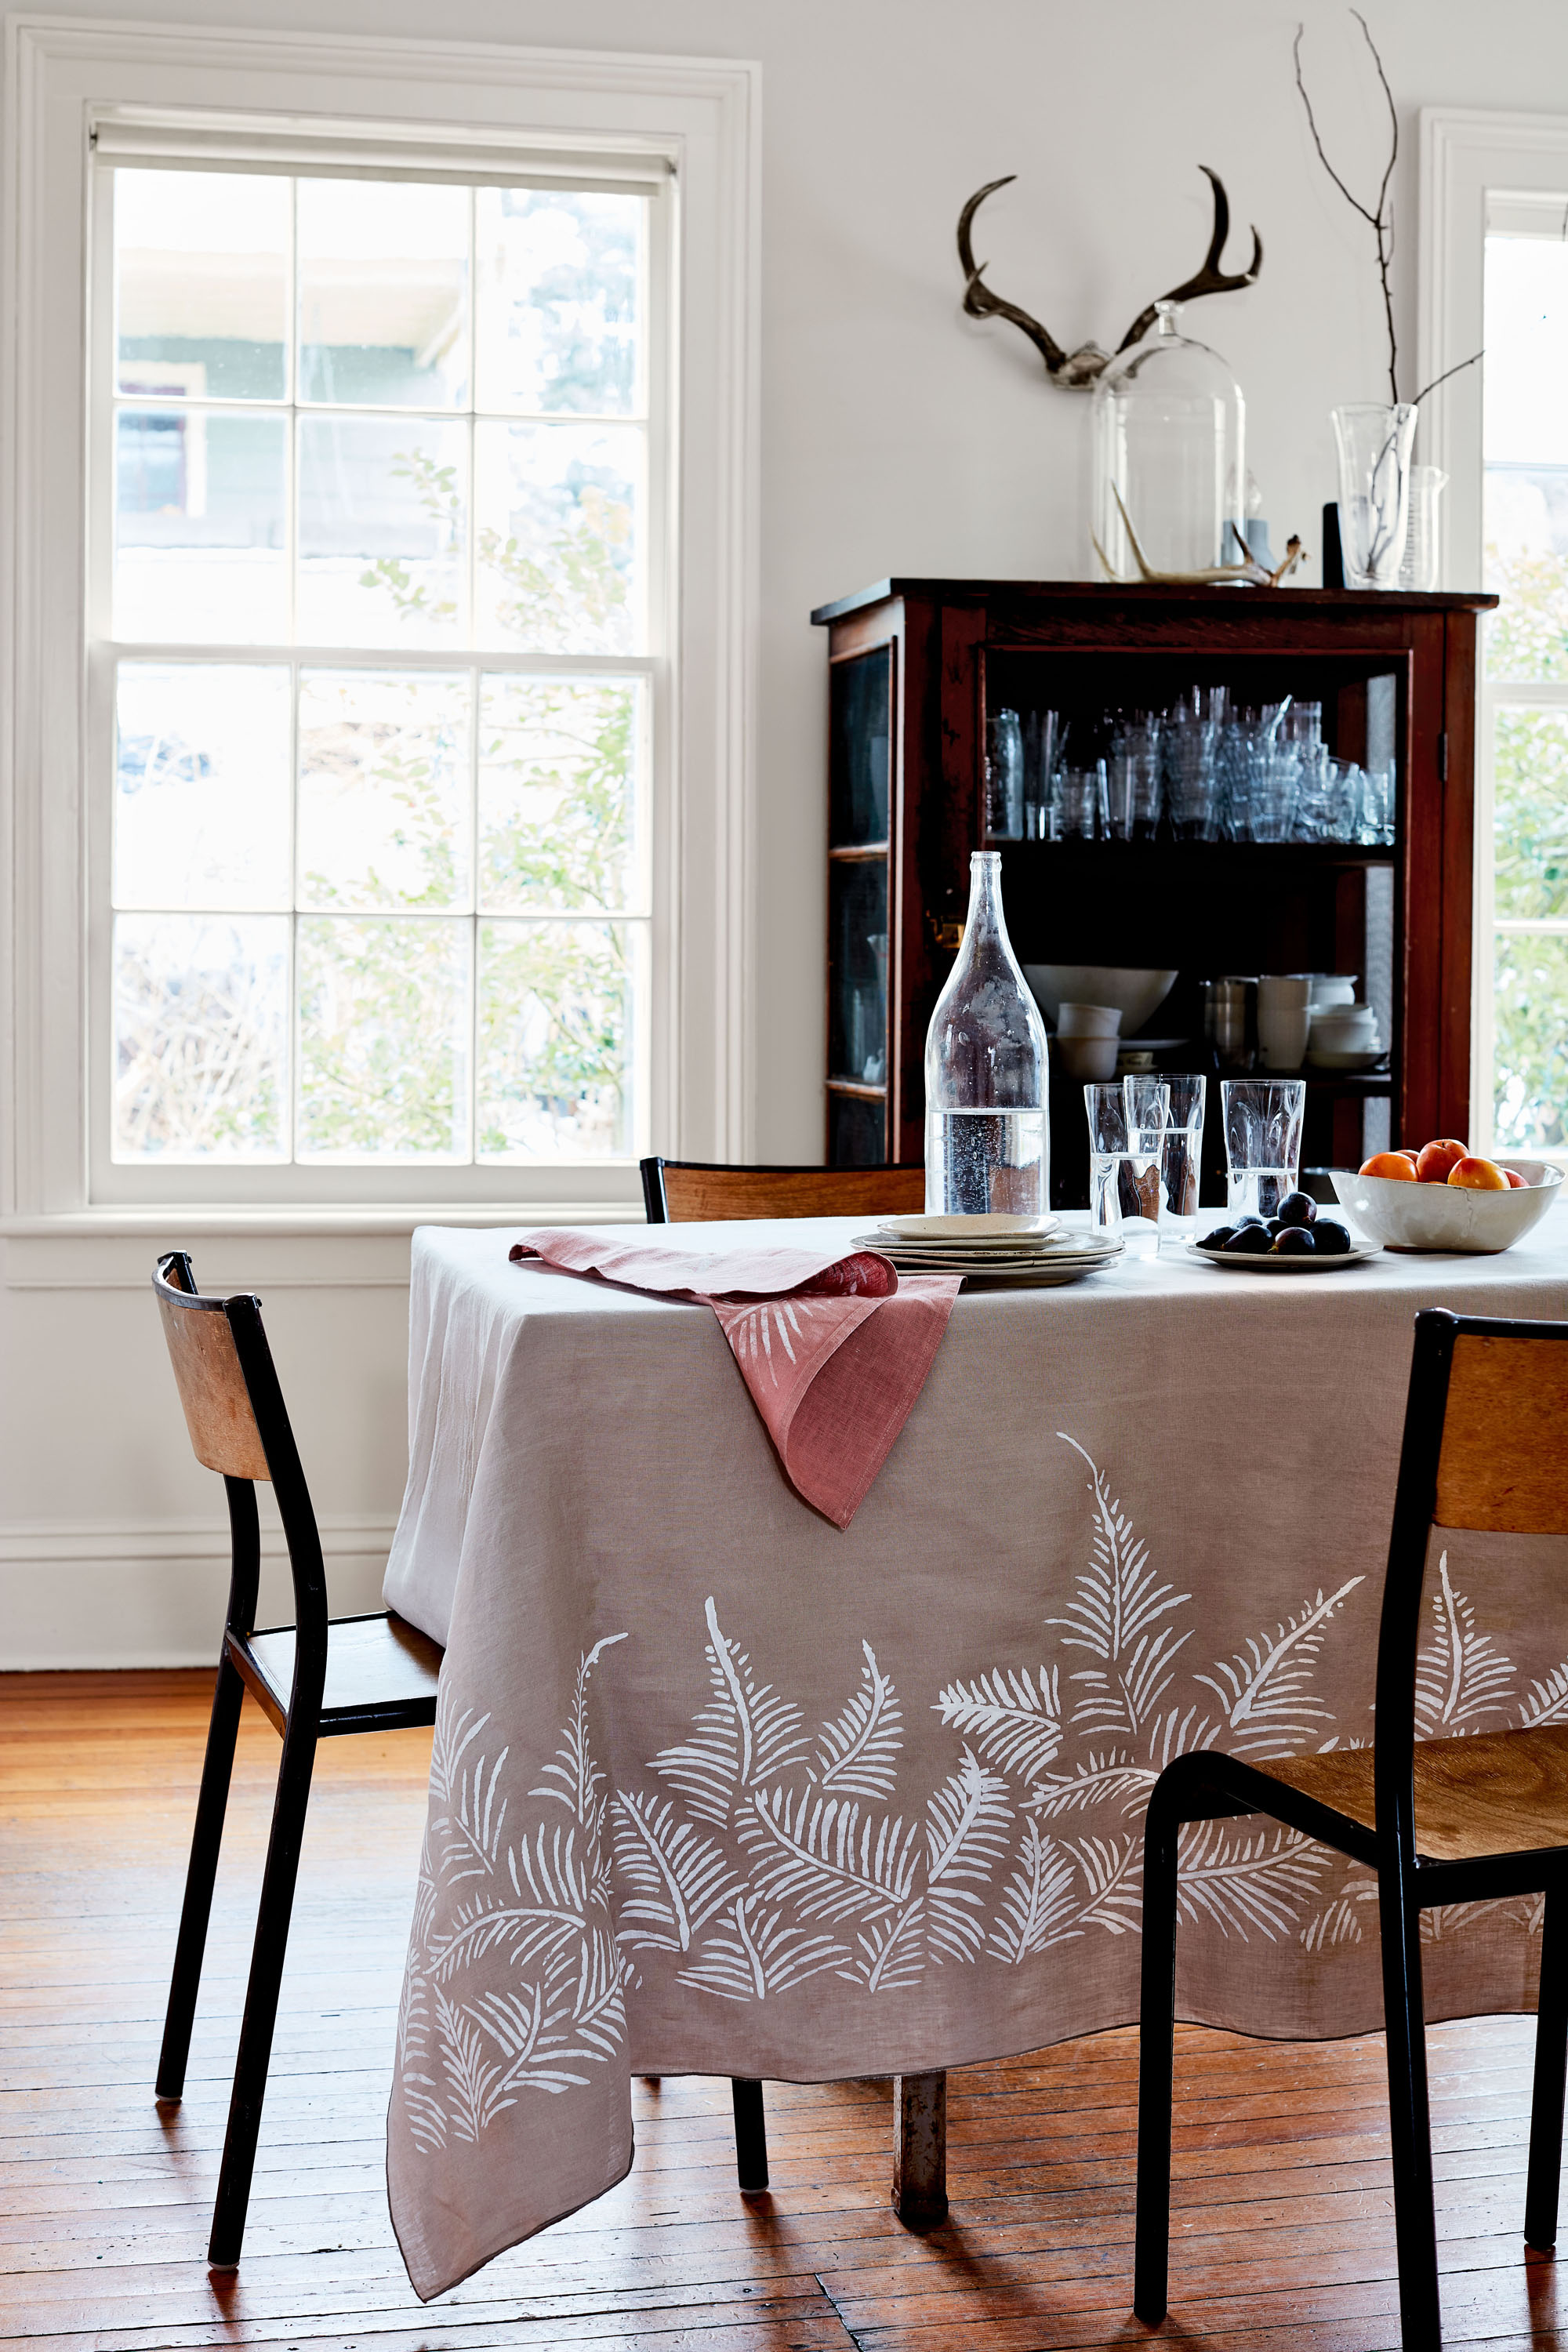 stenciled napkin and tablecloth botanical